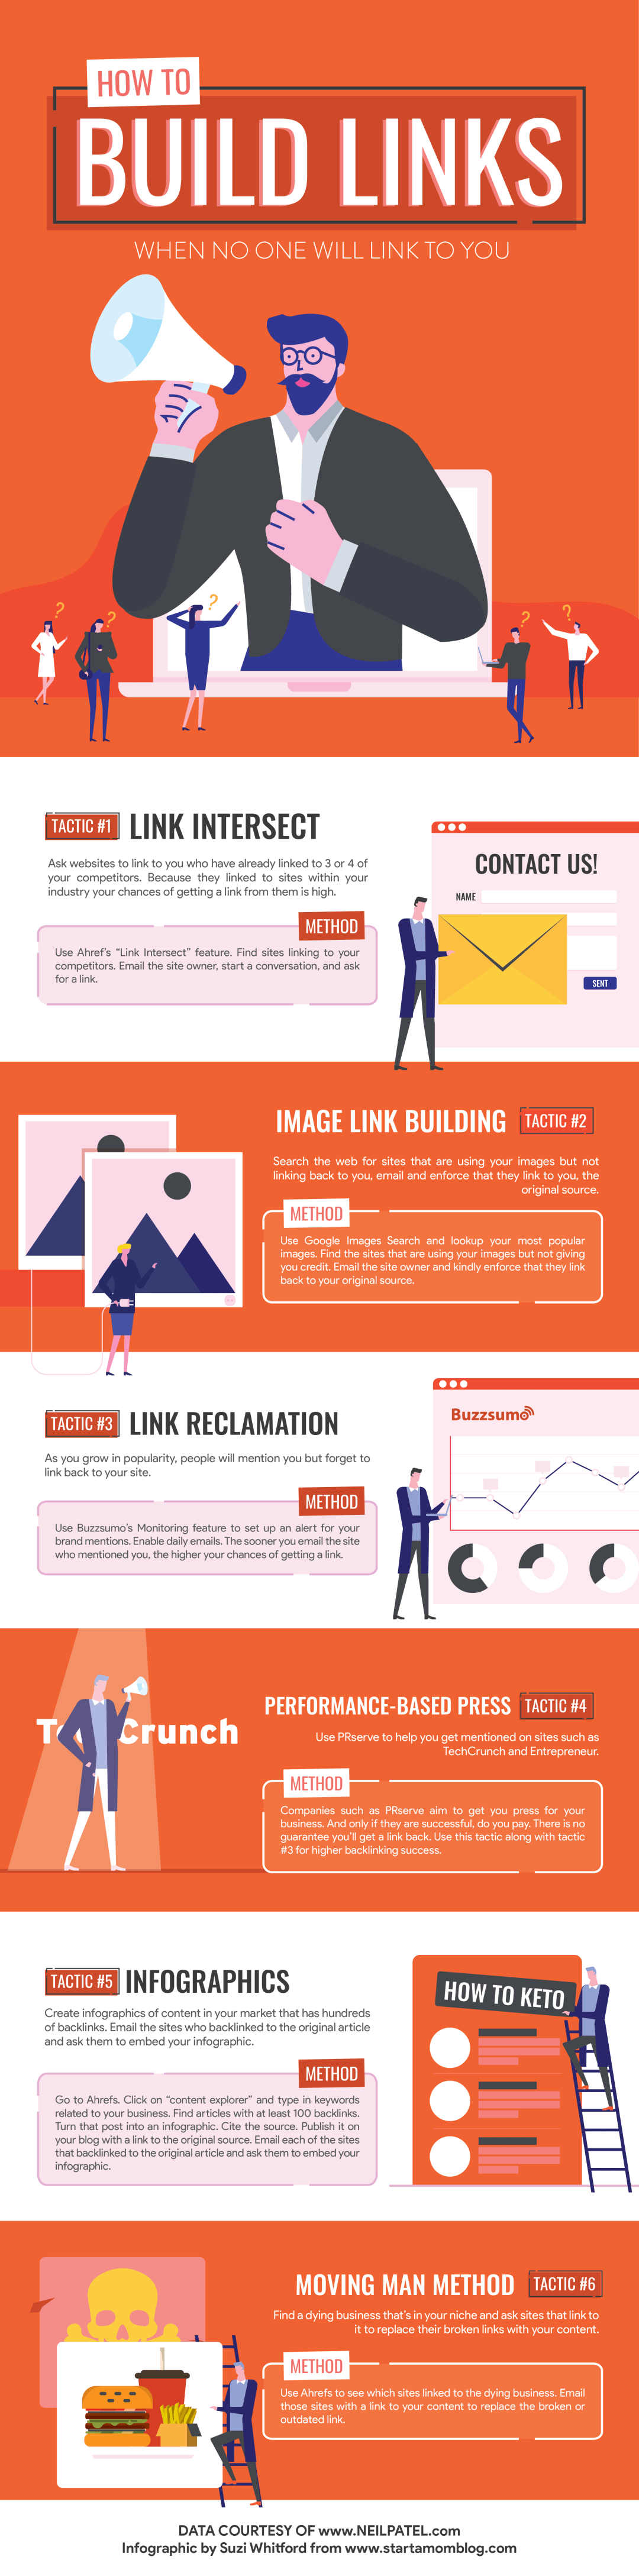 How to Build Links When No One Will Link to You